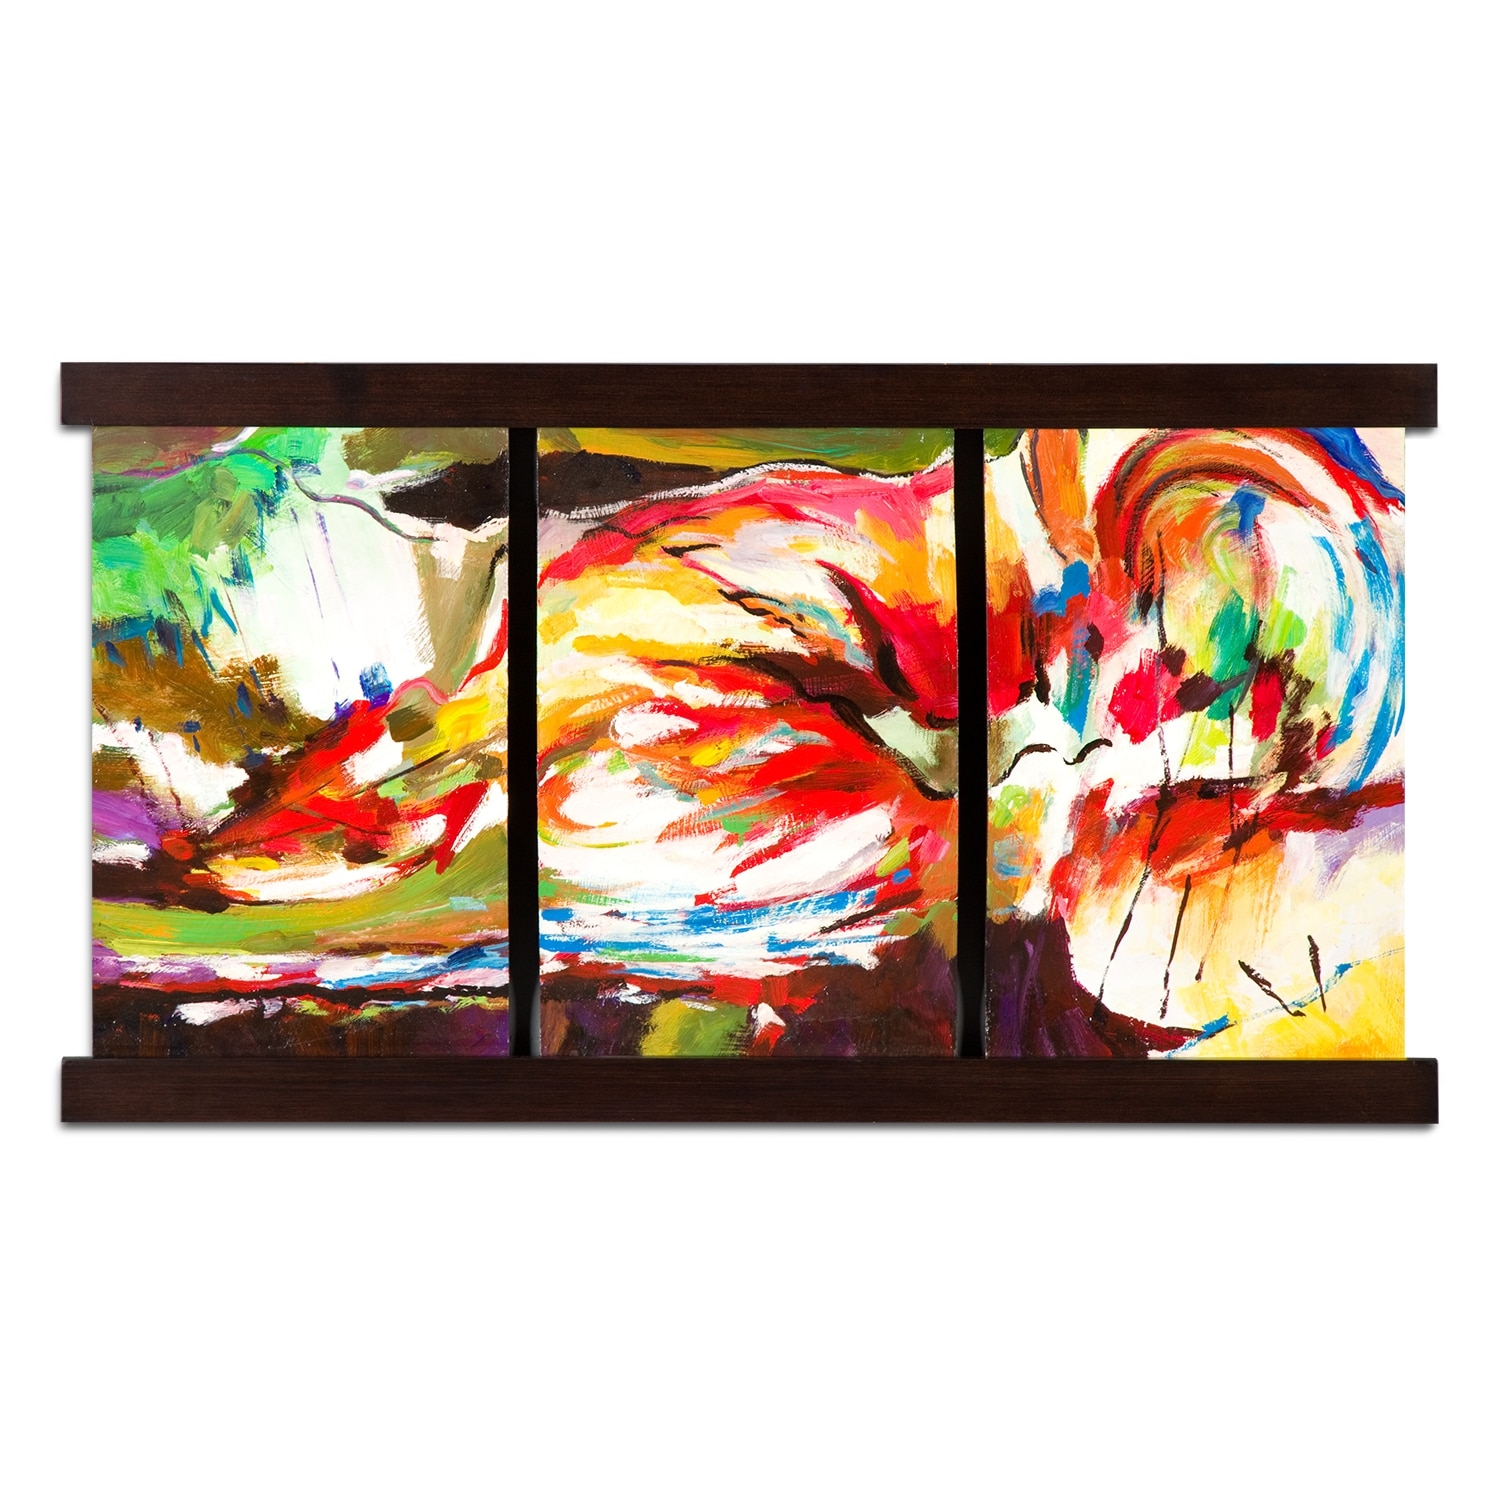 Home Accessories - Bent Colors Mixed Media Painting